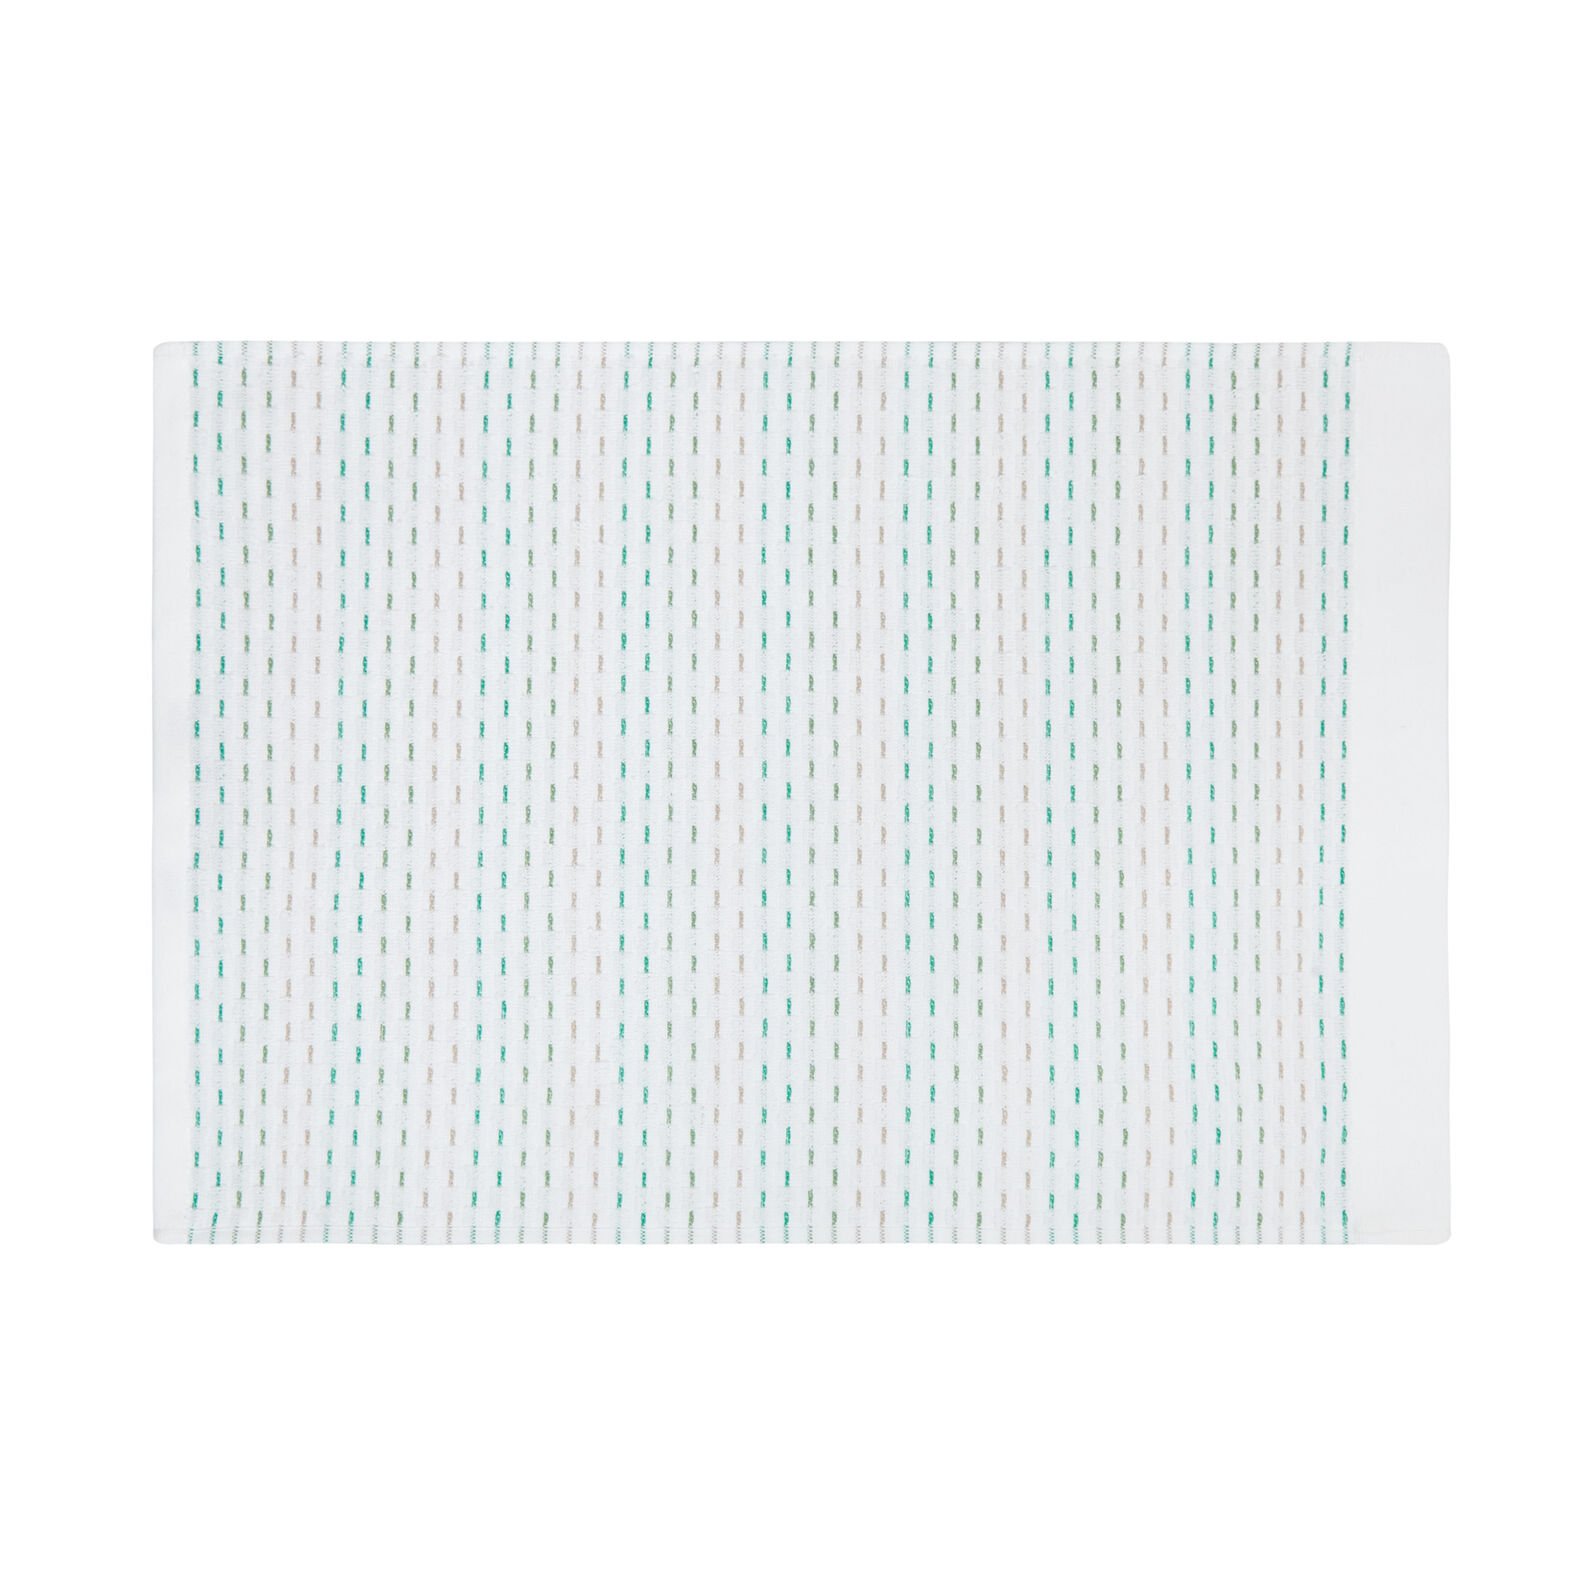 Woven cotton terry towel